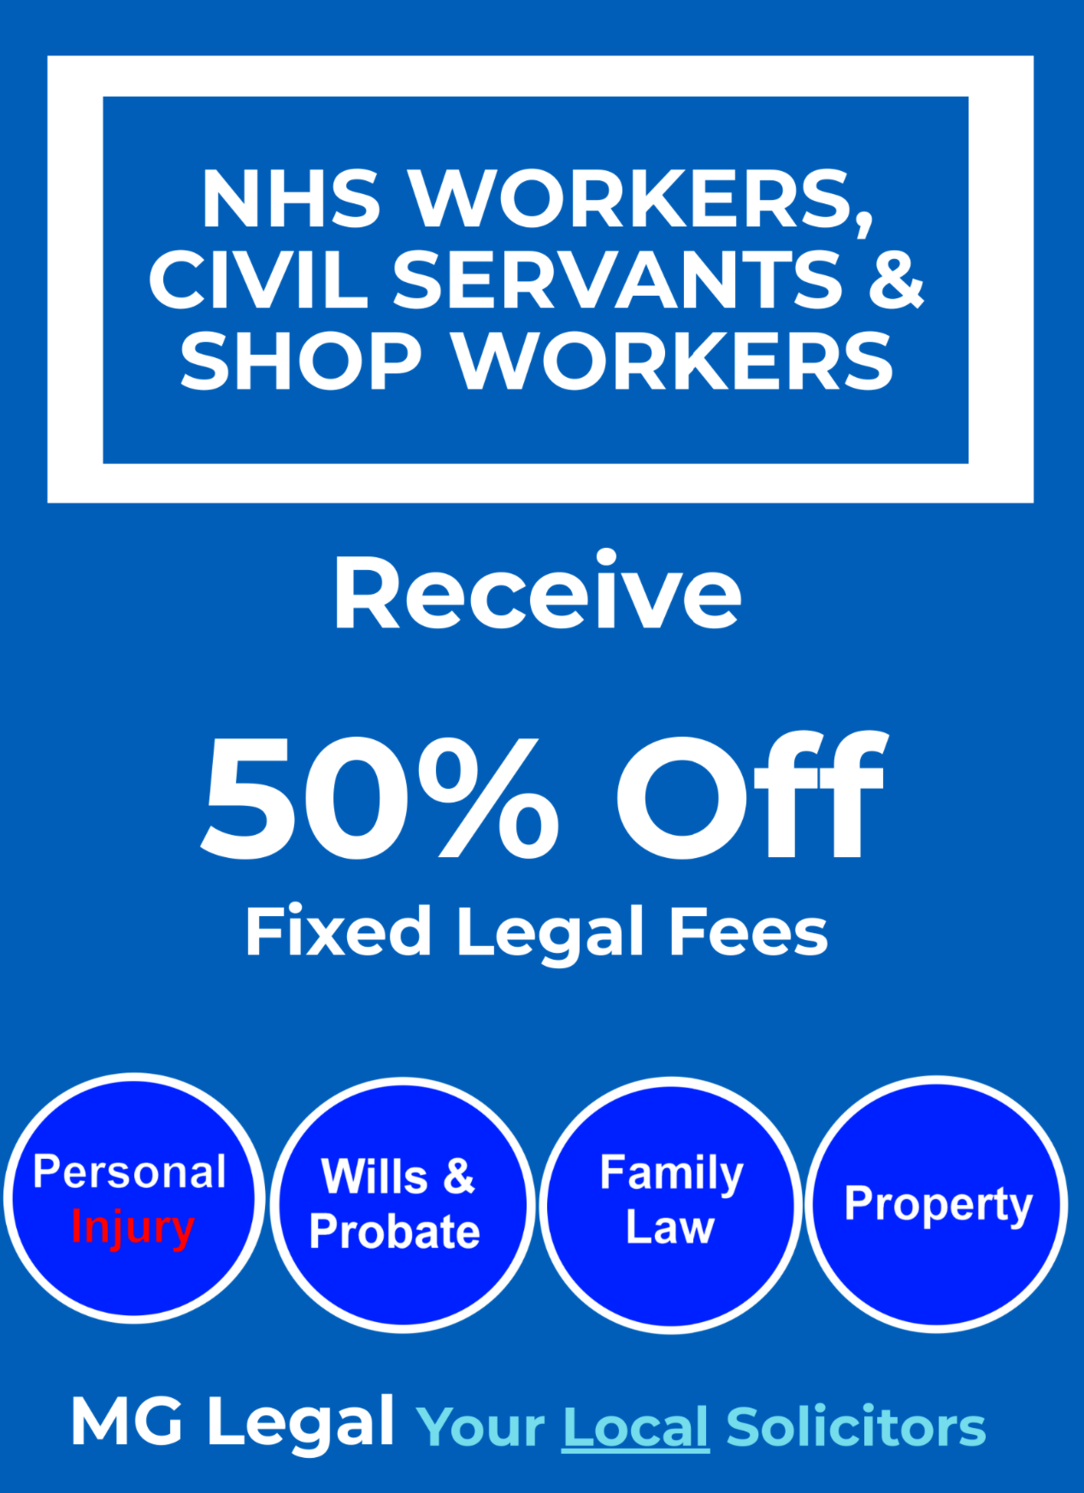 NHS Workers, Civil Servants & Shop Workers recieve 50% off fixed legal fees.